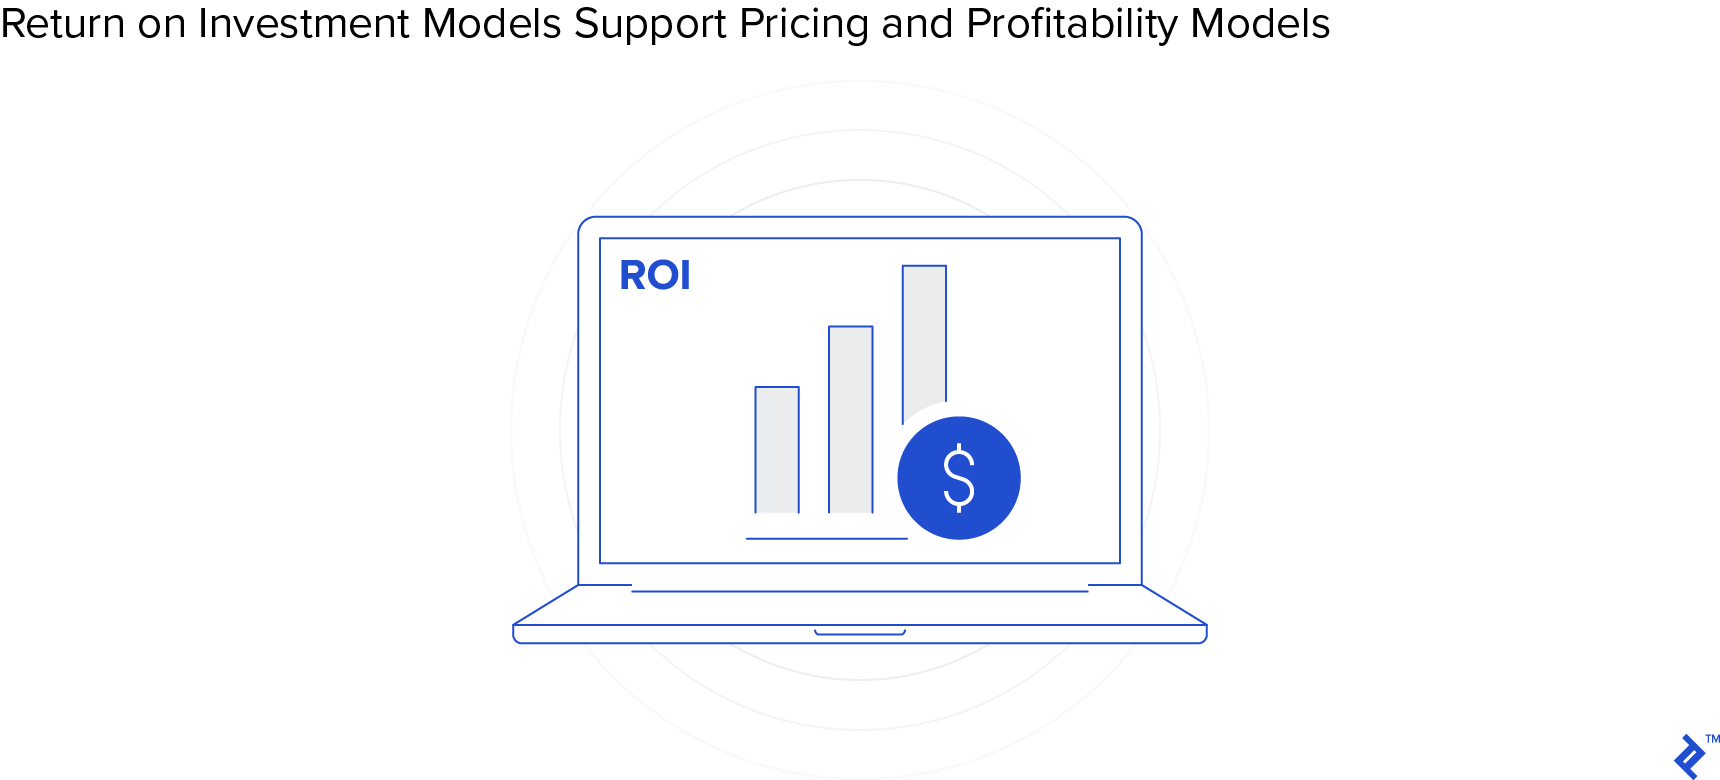 Return on investment models support pricing and profitability models.